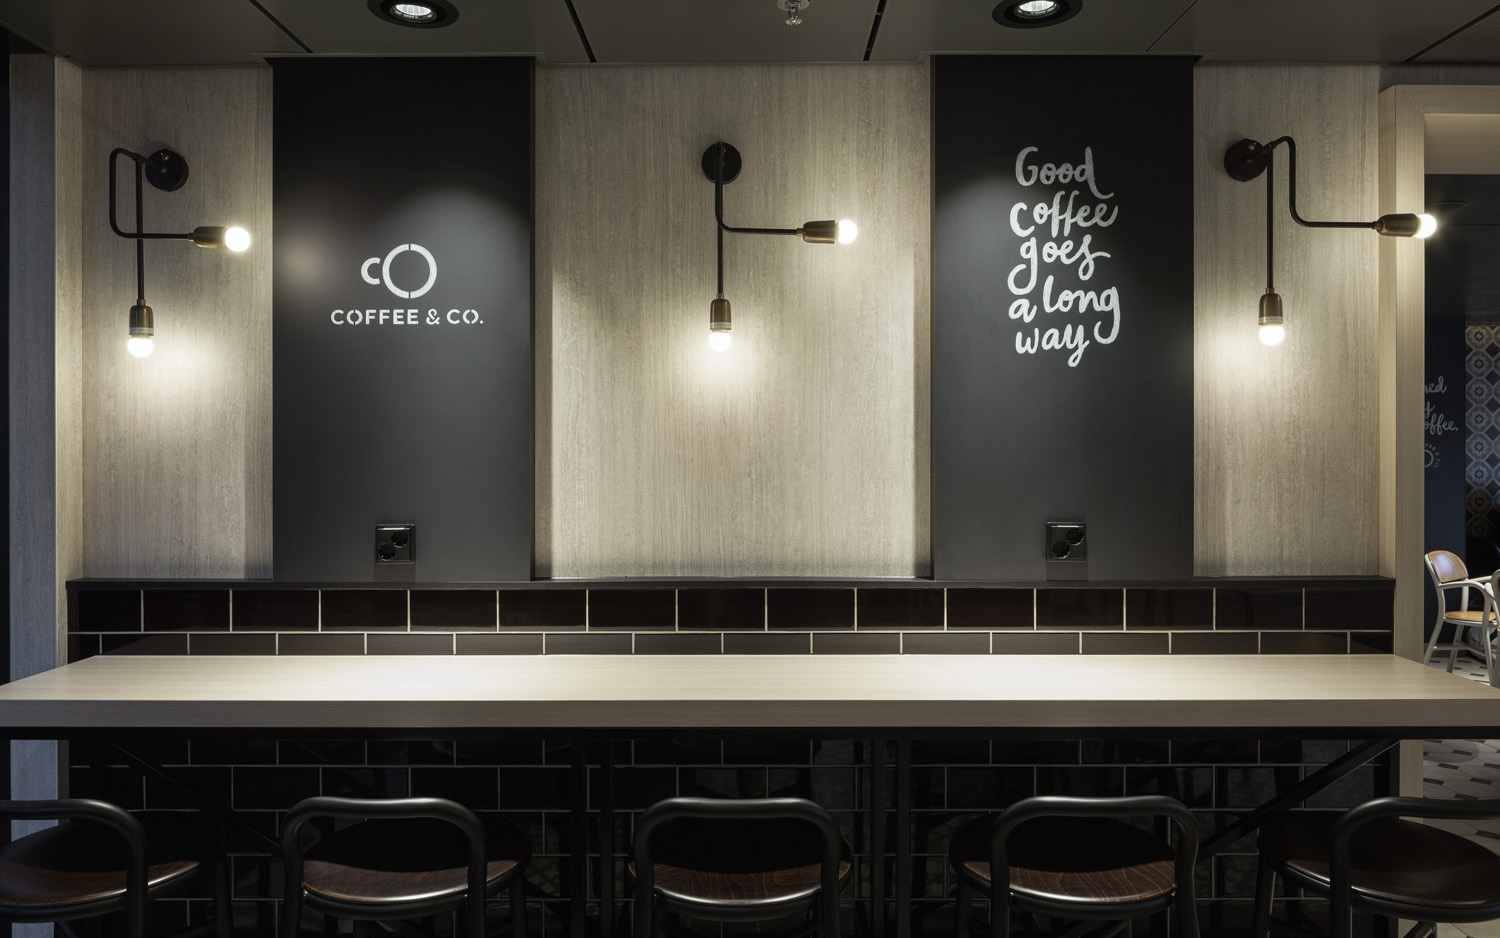 Interior graphics and logo design by Bond for cruise ship cafeteria concept Coffee & Co.